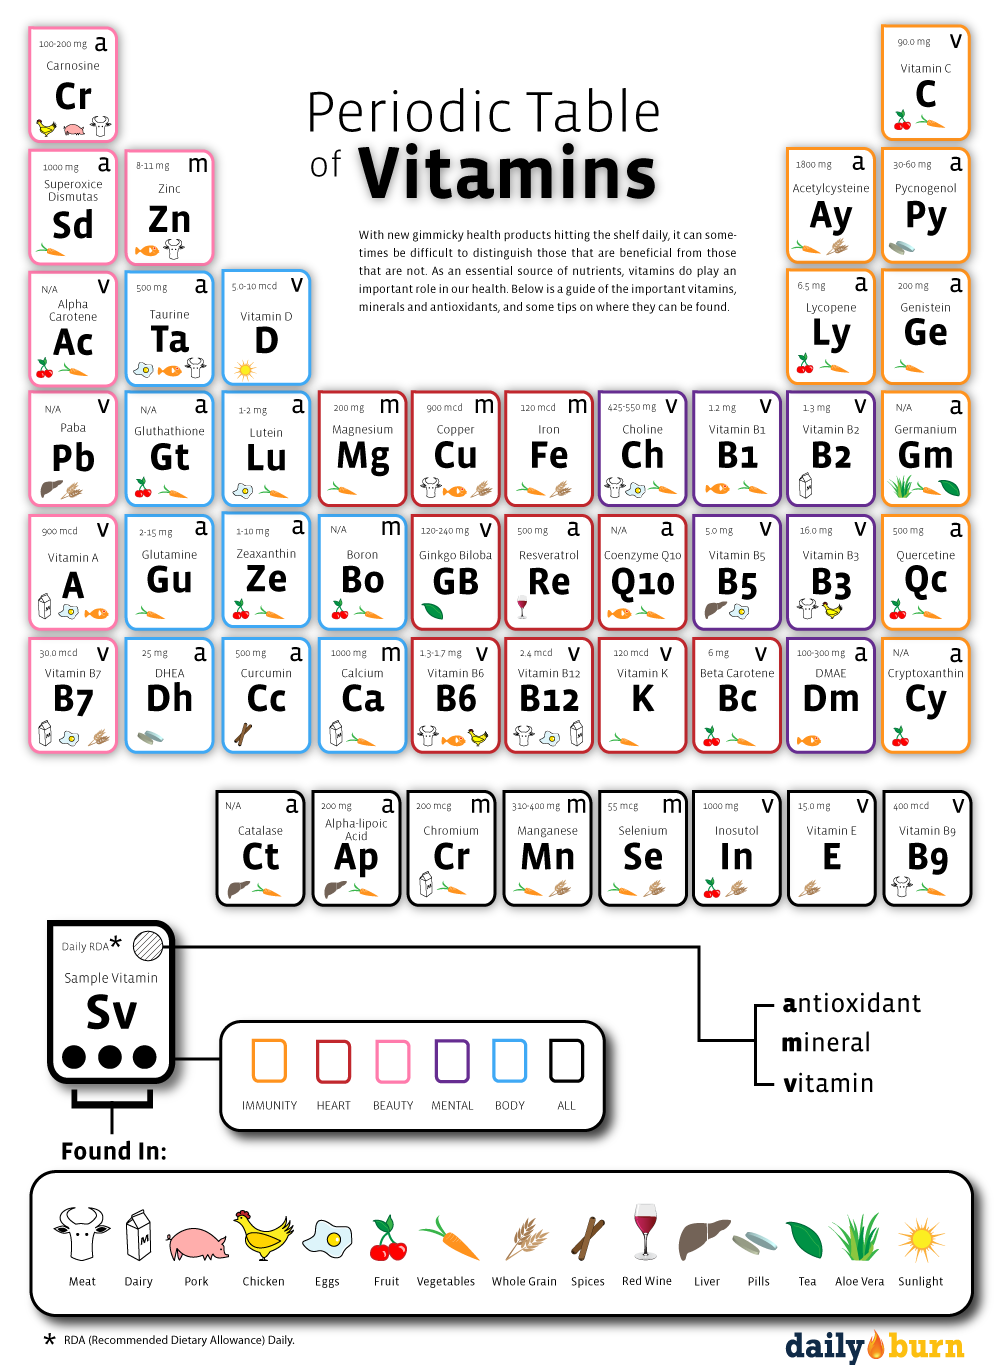 Creative and cool uses of the periodic table creative and cool uses of the periodic table 27 3 gamestrikefo Image collections